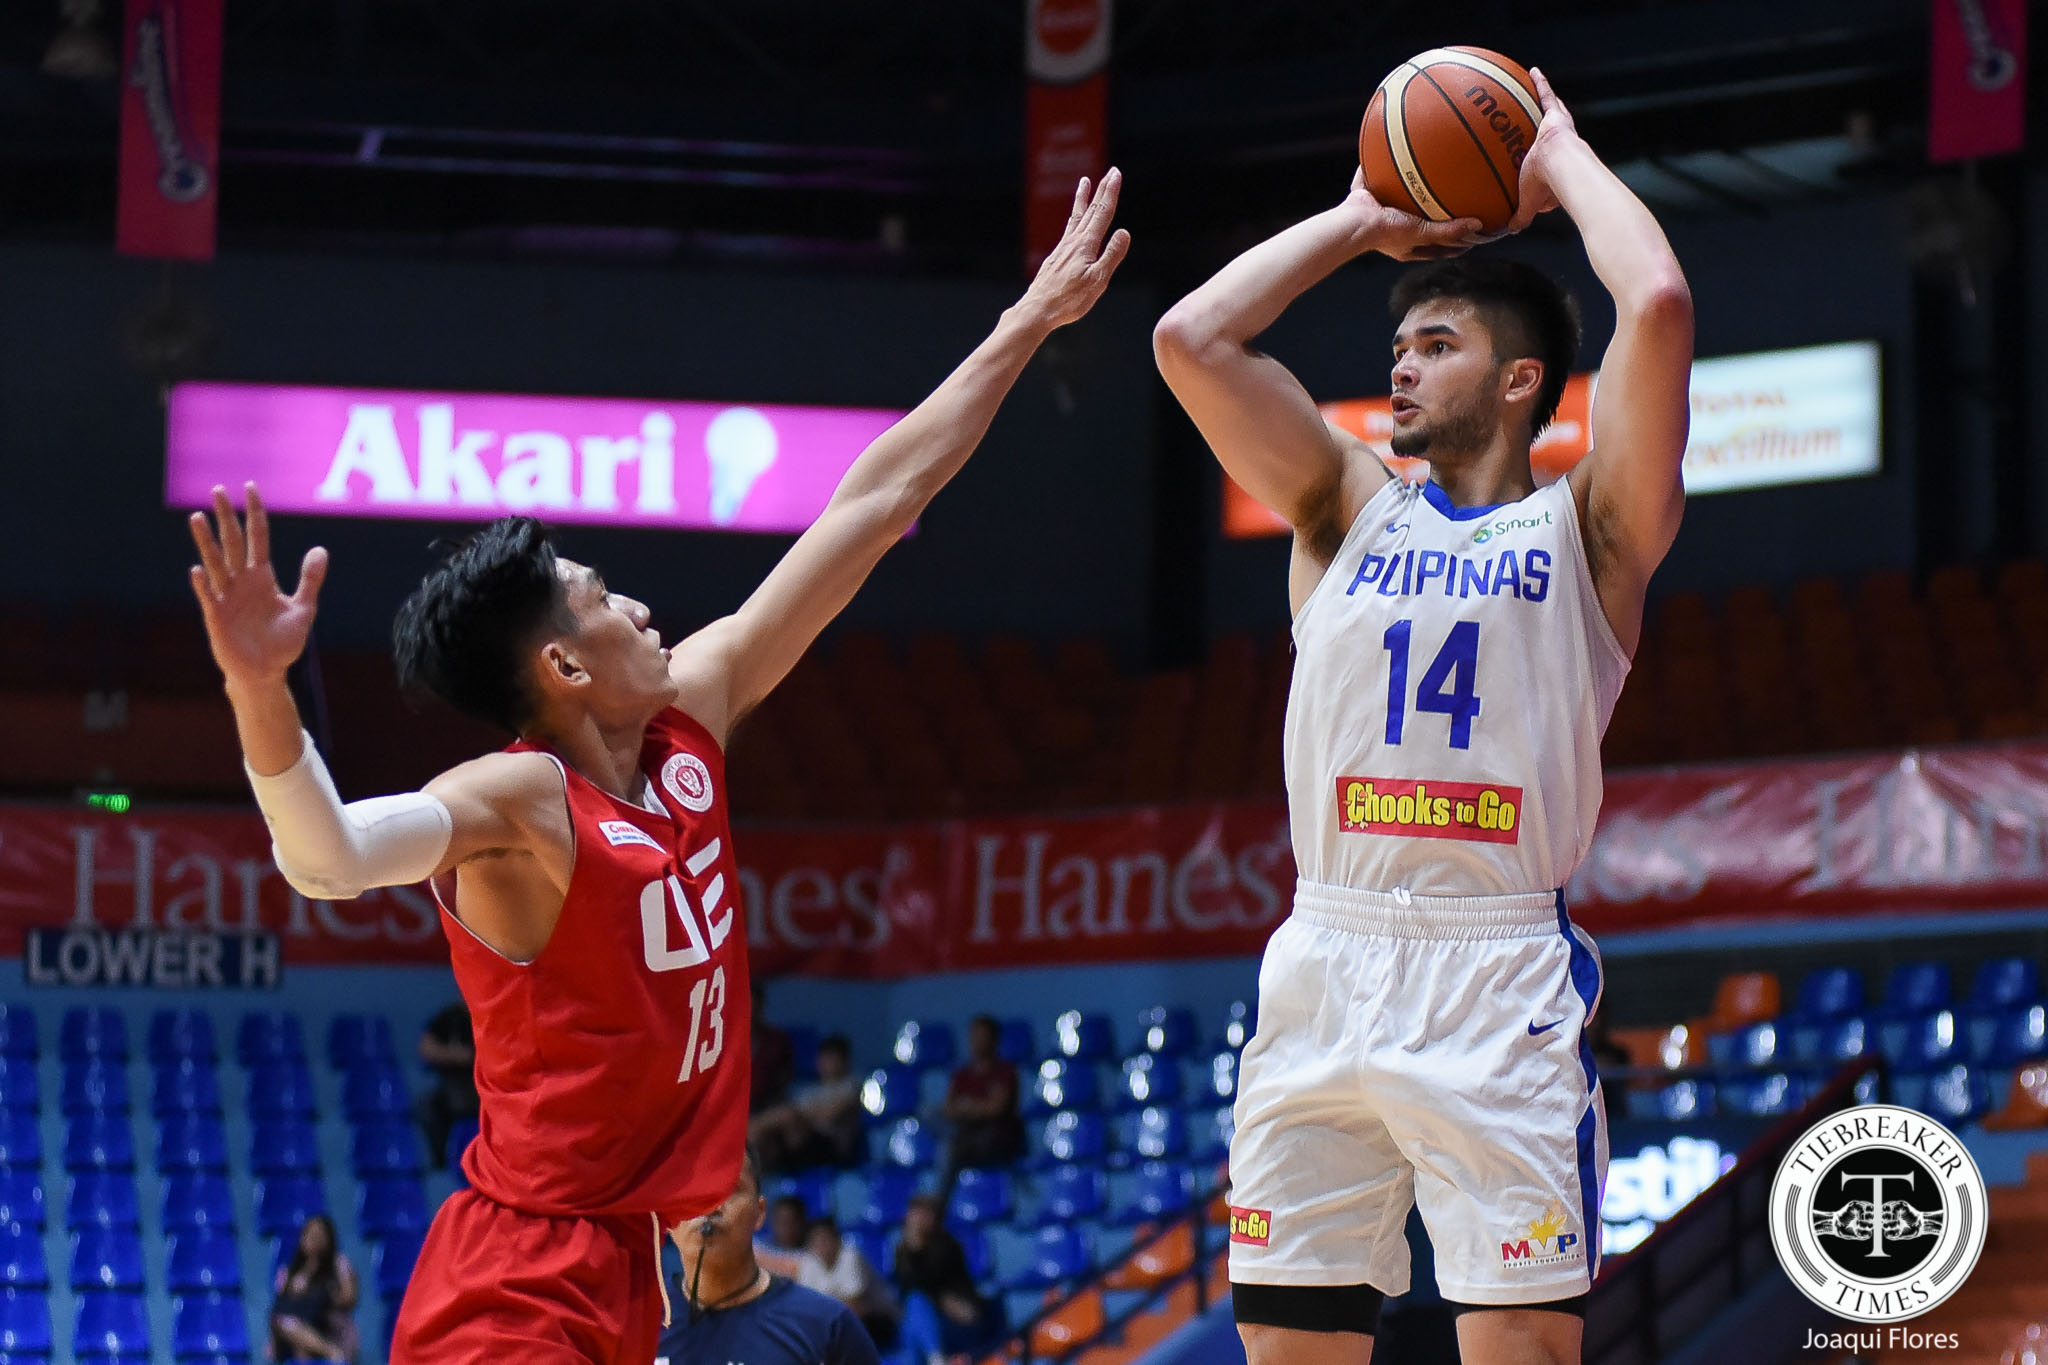 Tiebreaker Times Kobe Paras hopes SBP showcases collegiate stars for SEA Games Basketball Gilas Pilipinas News UAAP UP  UP Men's Basketball UAAP Season 82 Men's Basketball UAAP Season 82 Kobe Paras Gilas Pilipinas Men 2019 SEA Games - Basketball